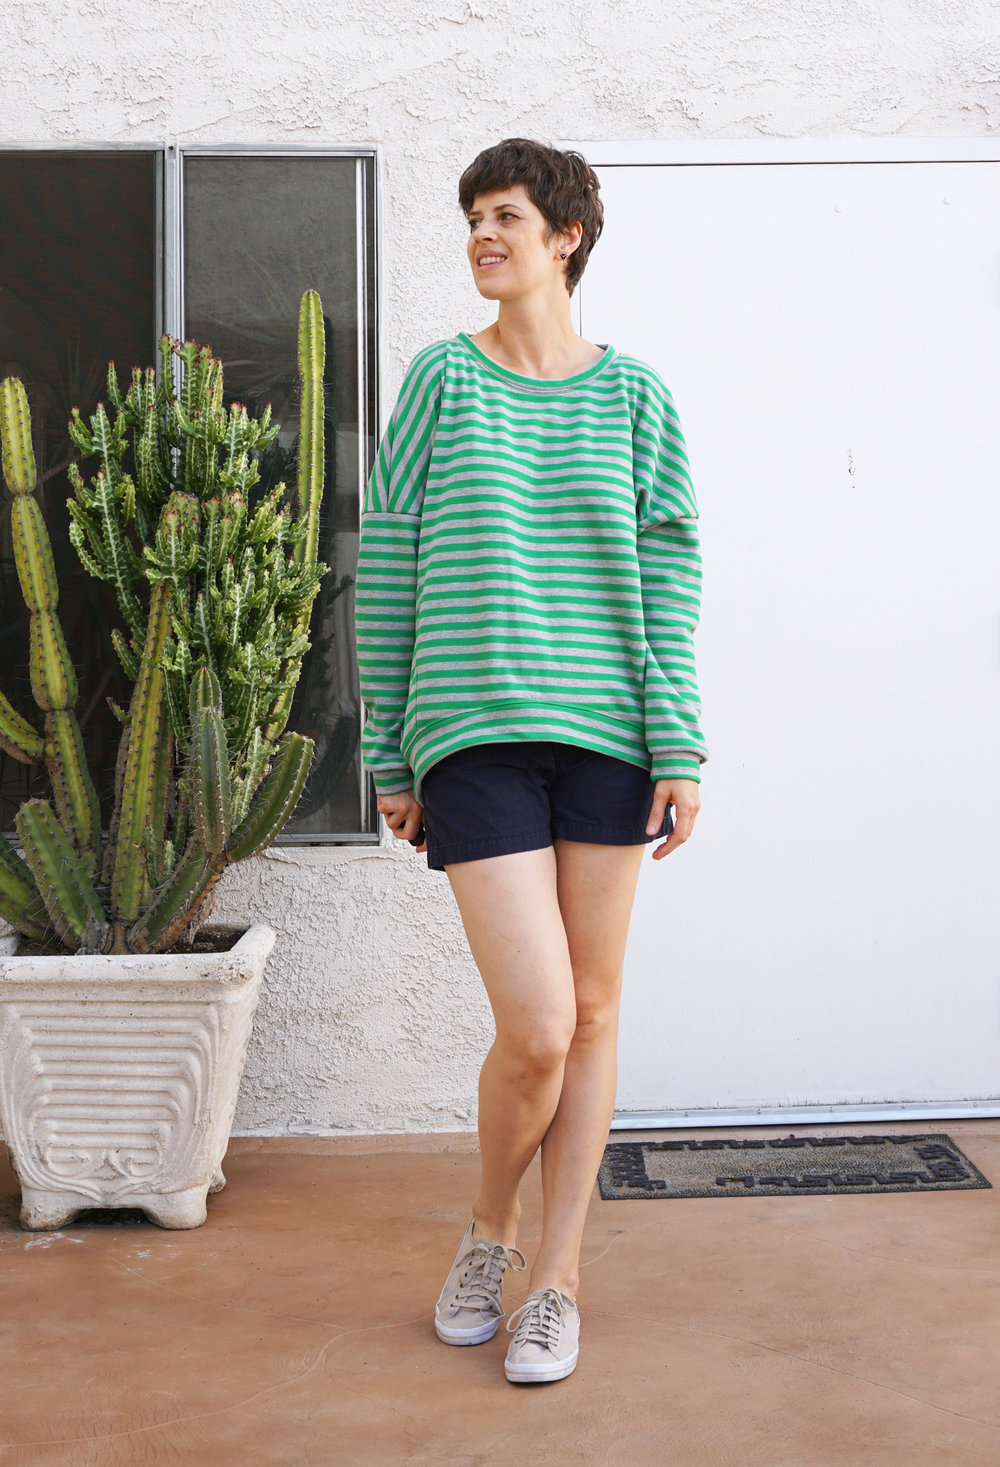 DIY Oversized Sweatshirt – Catrin pattern by Schnittechen | Sew DIY